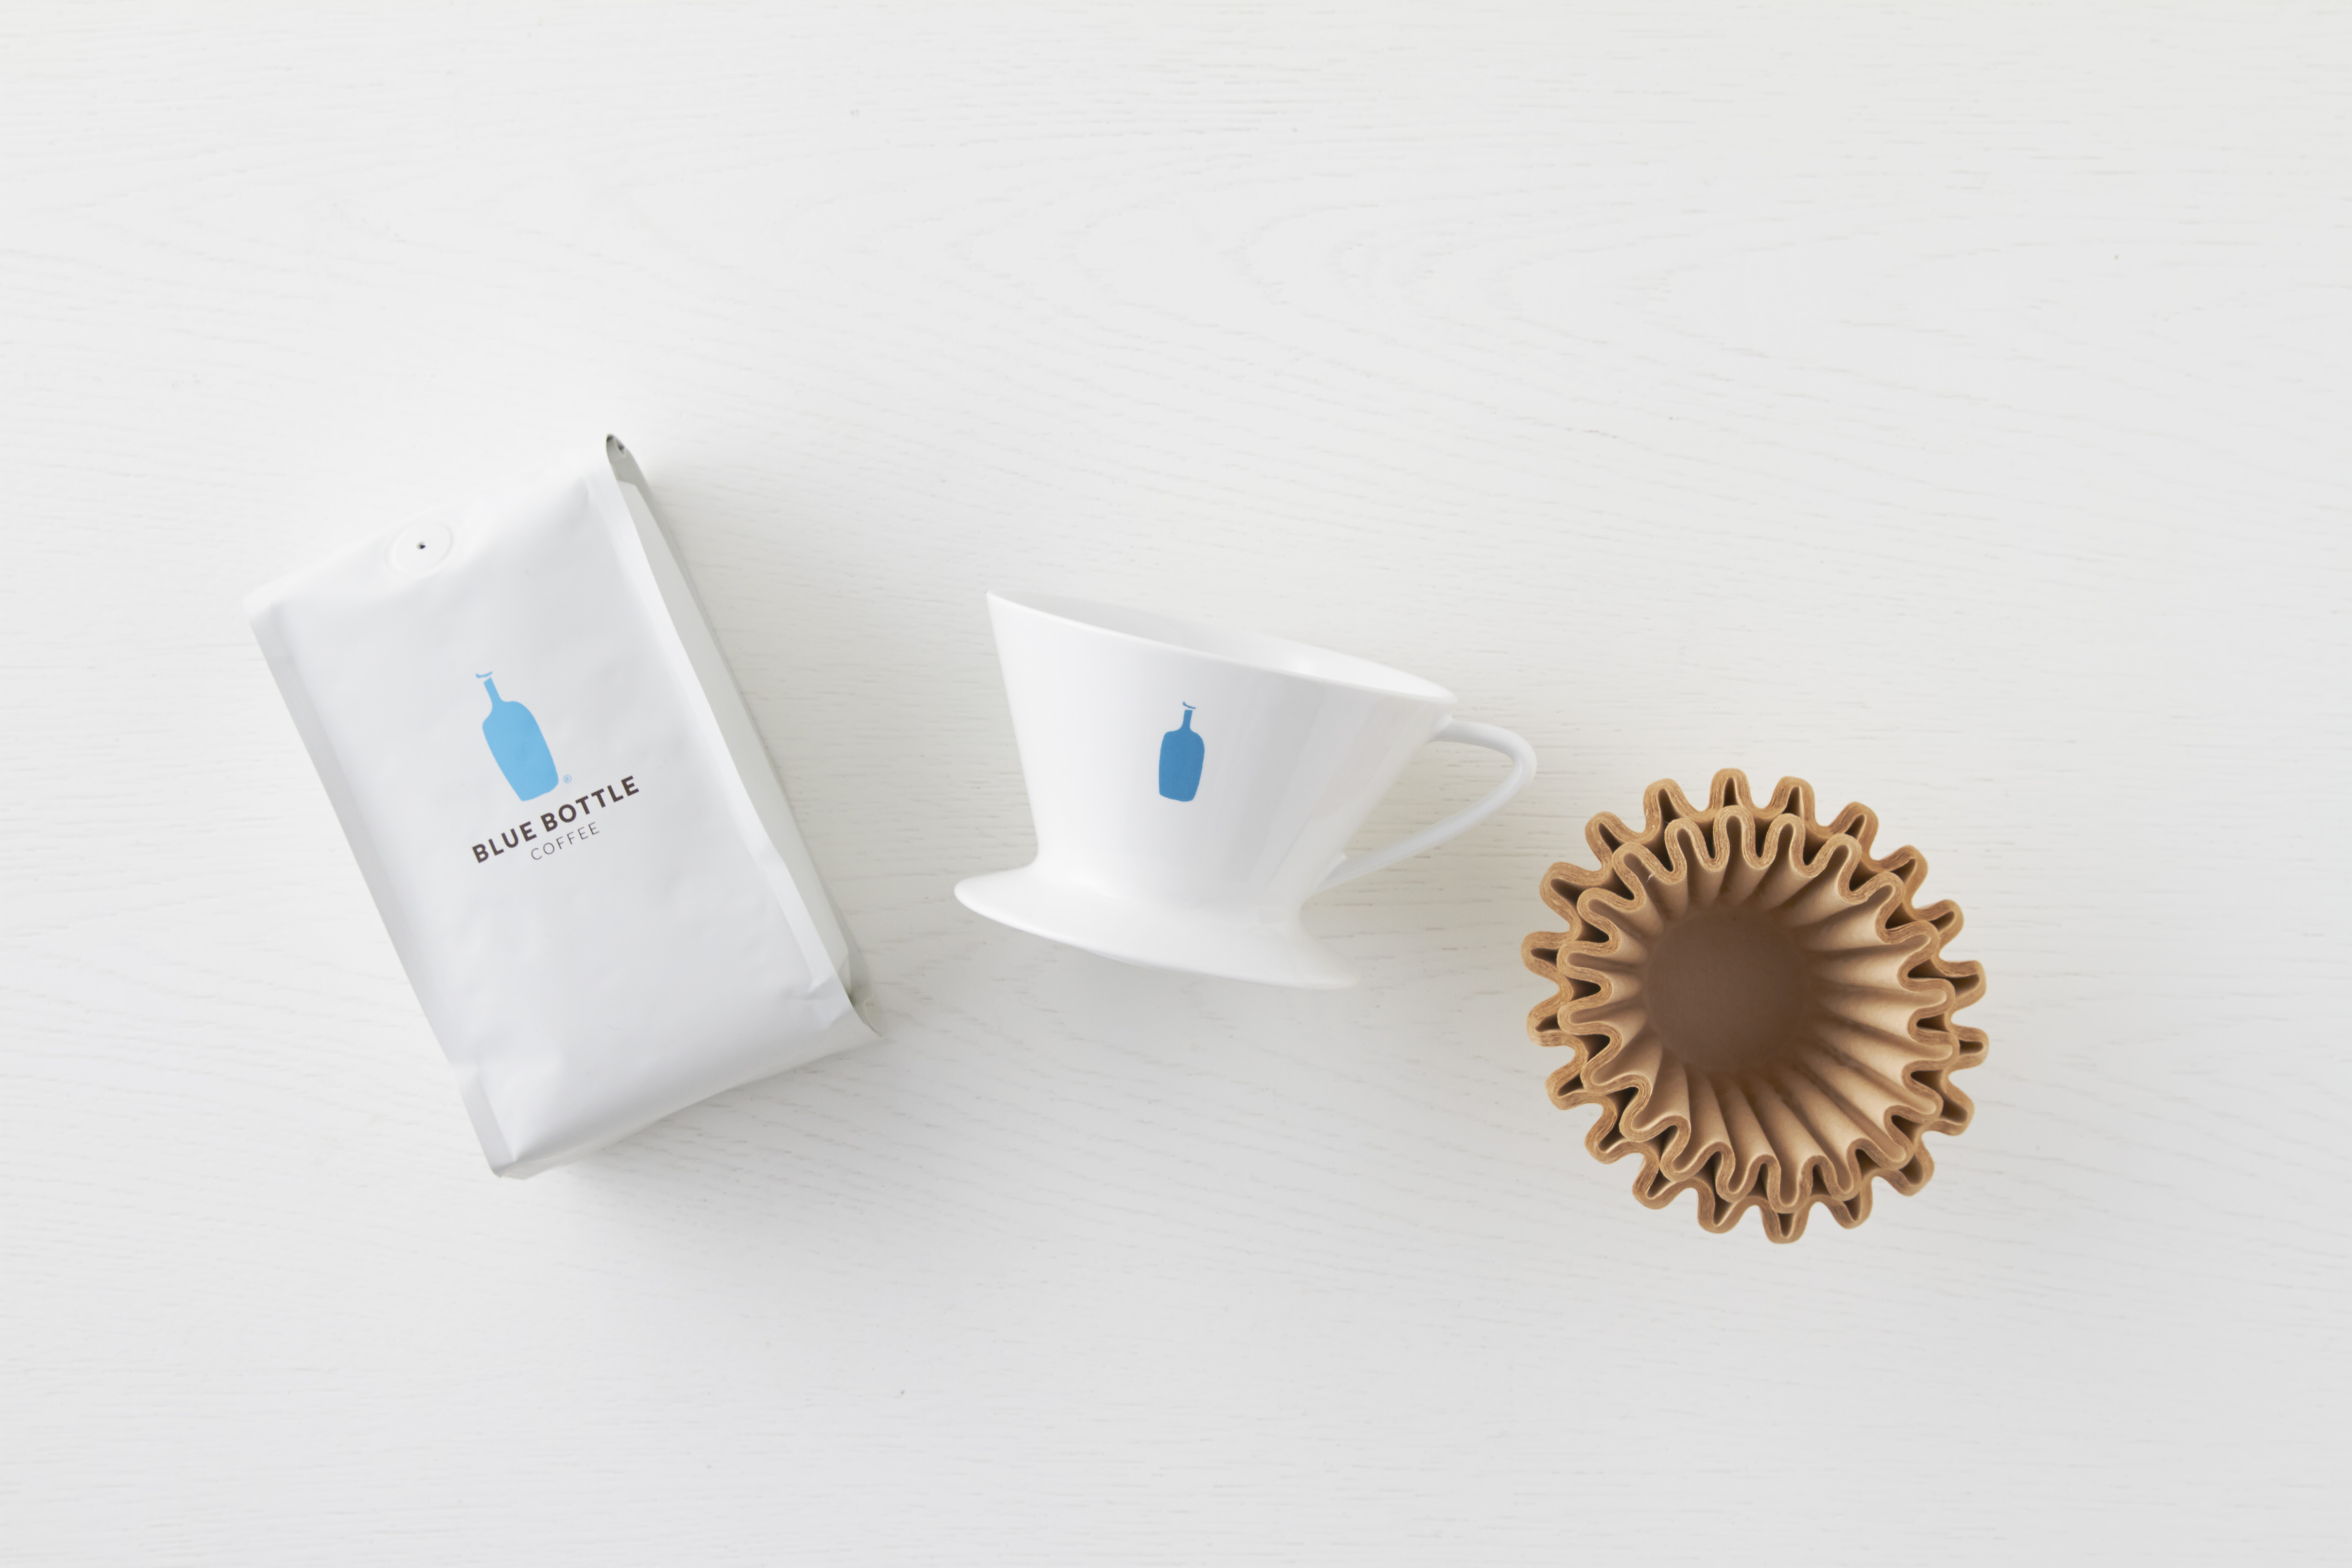 pour-over coffee set from Blue Bottle